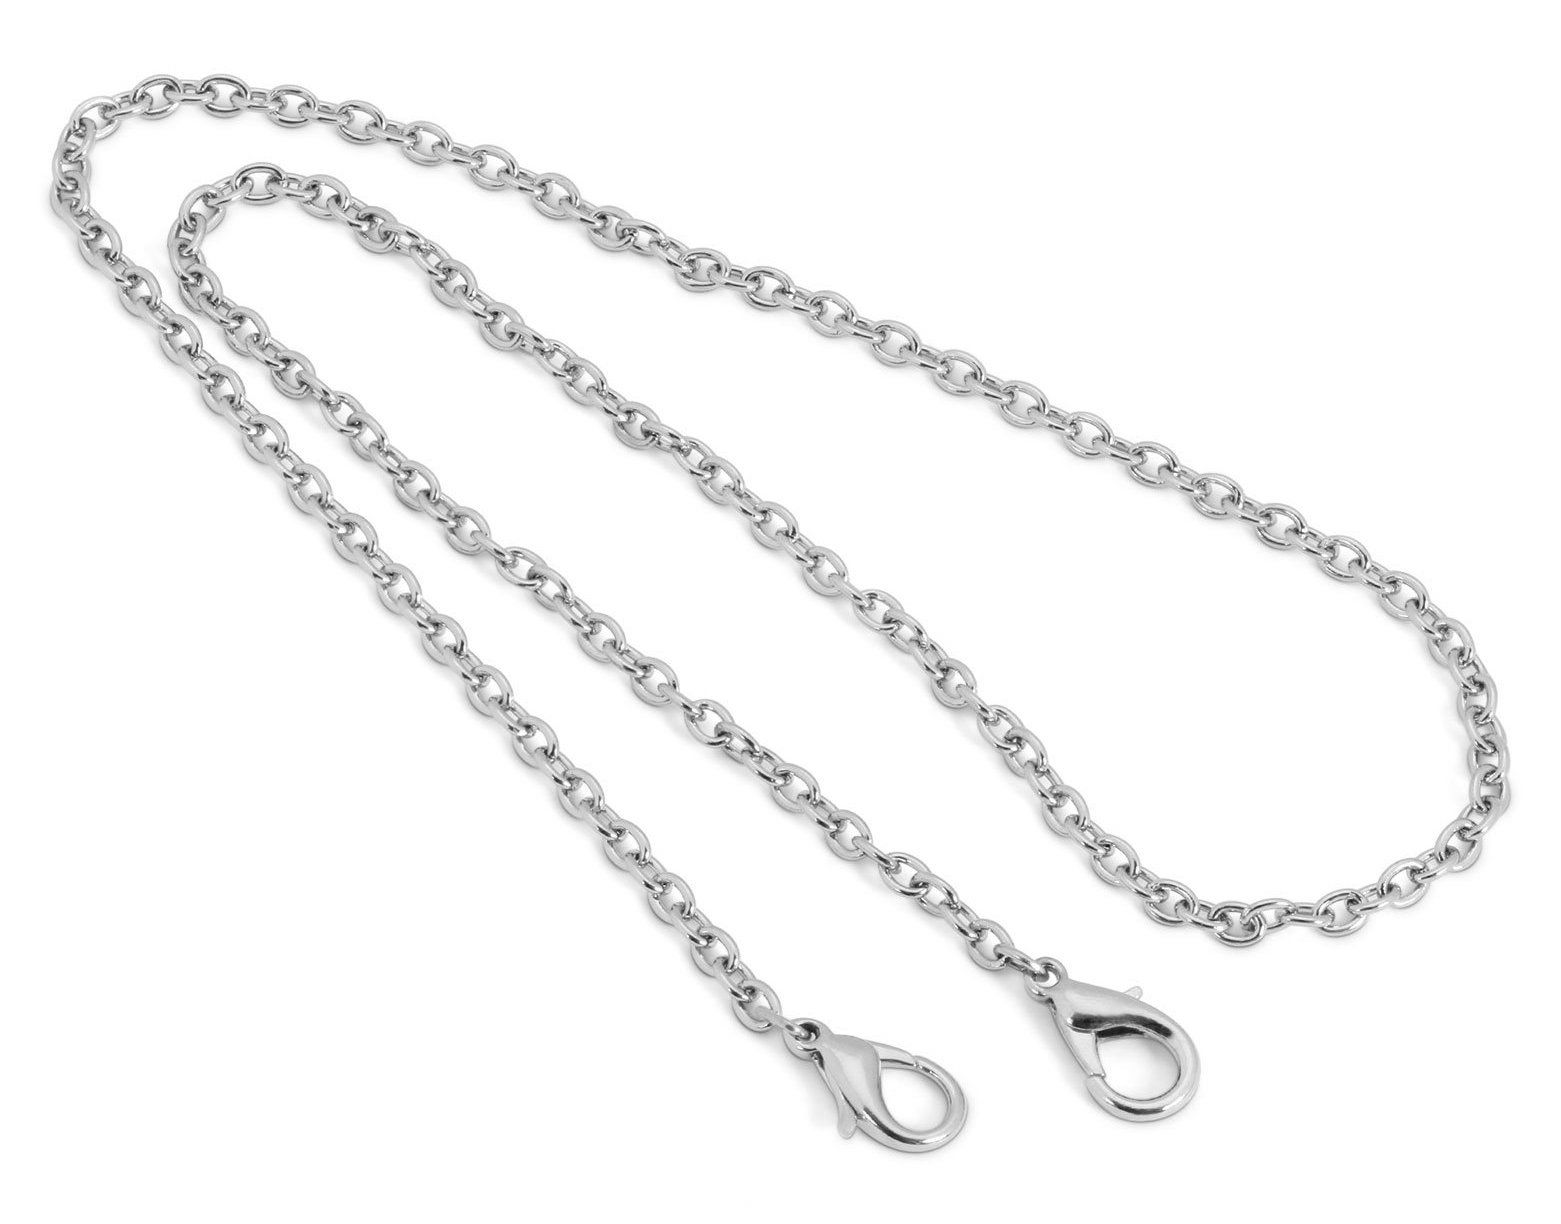 1928 Jewelry Silver Tone Chain Mask Holder